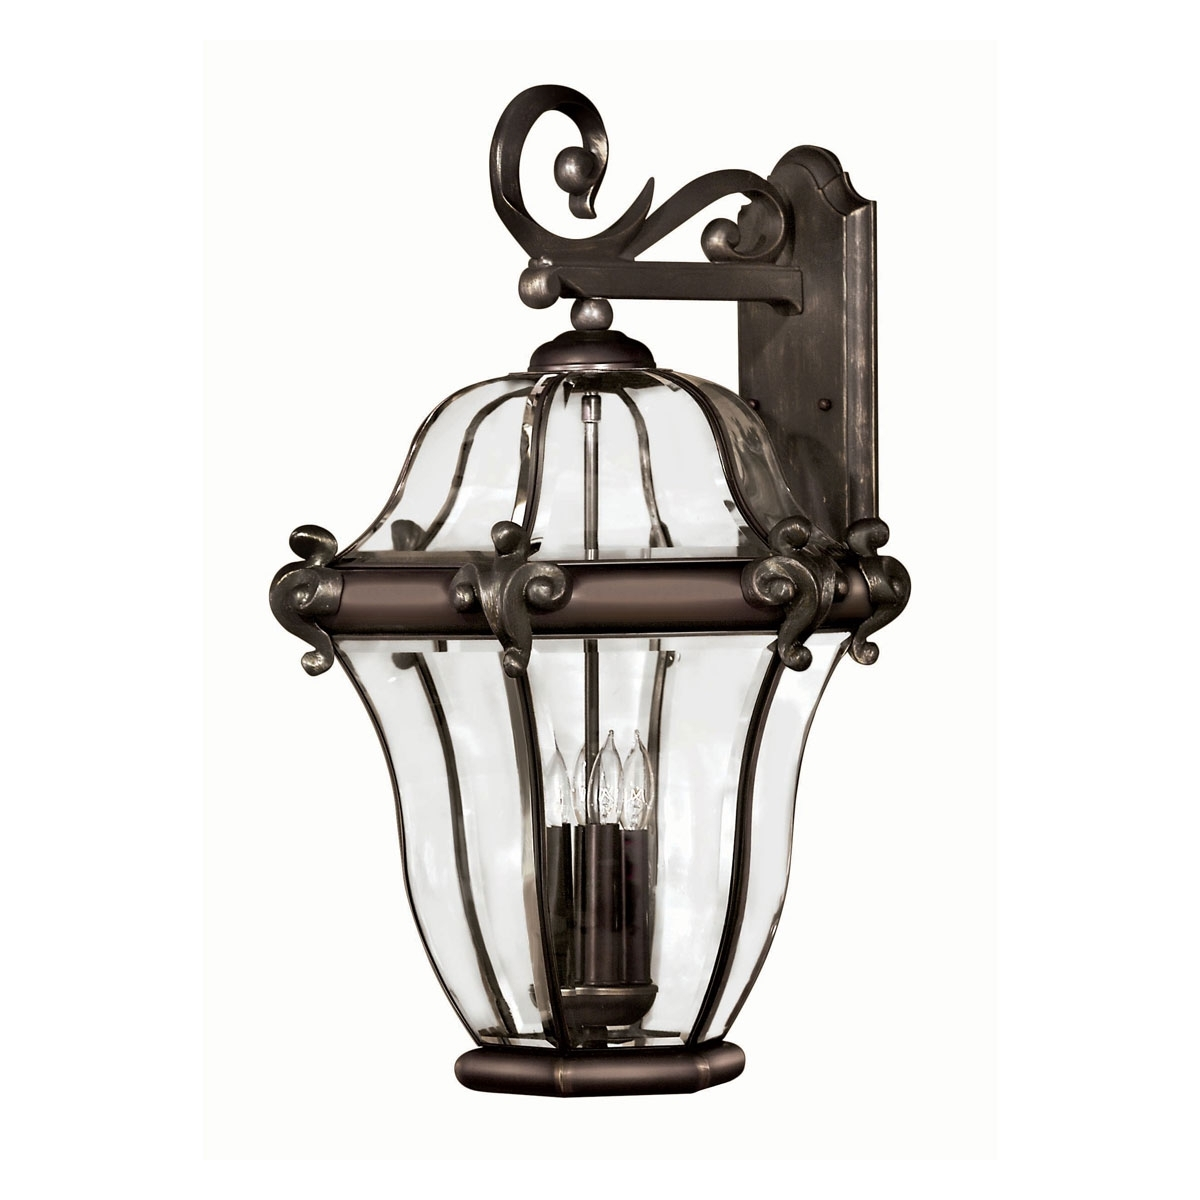 2446cb – X Large Outdoor Wall Light, San Clemente Copper Bronze Inside Extra Large Outdoor Wall Lighting (View 4 of 15)